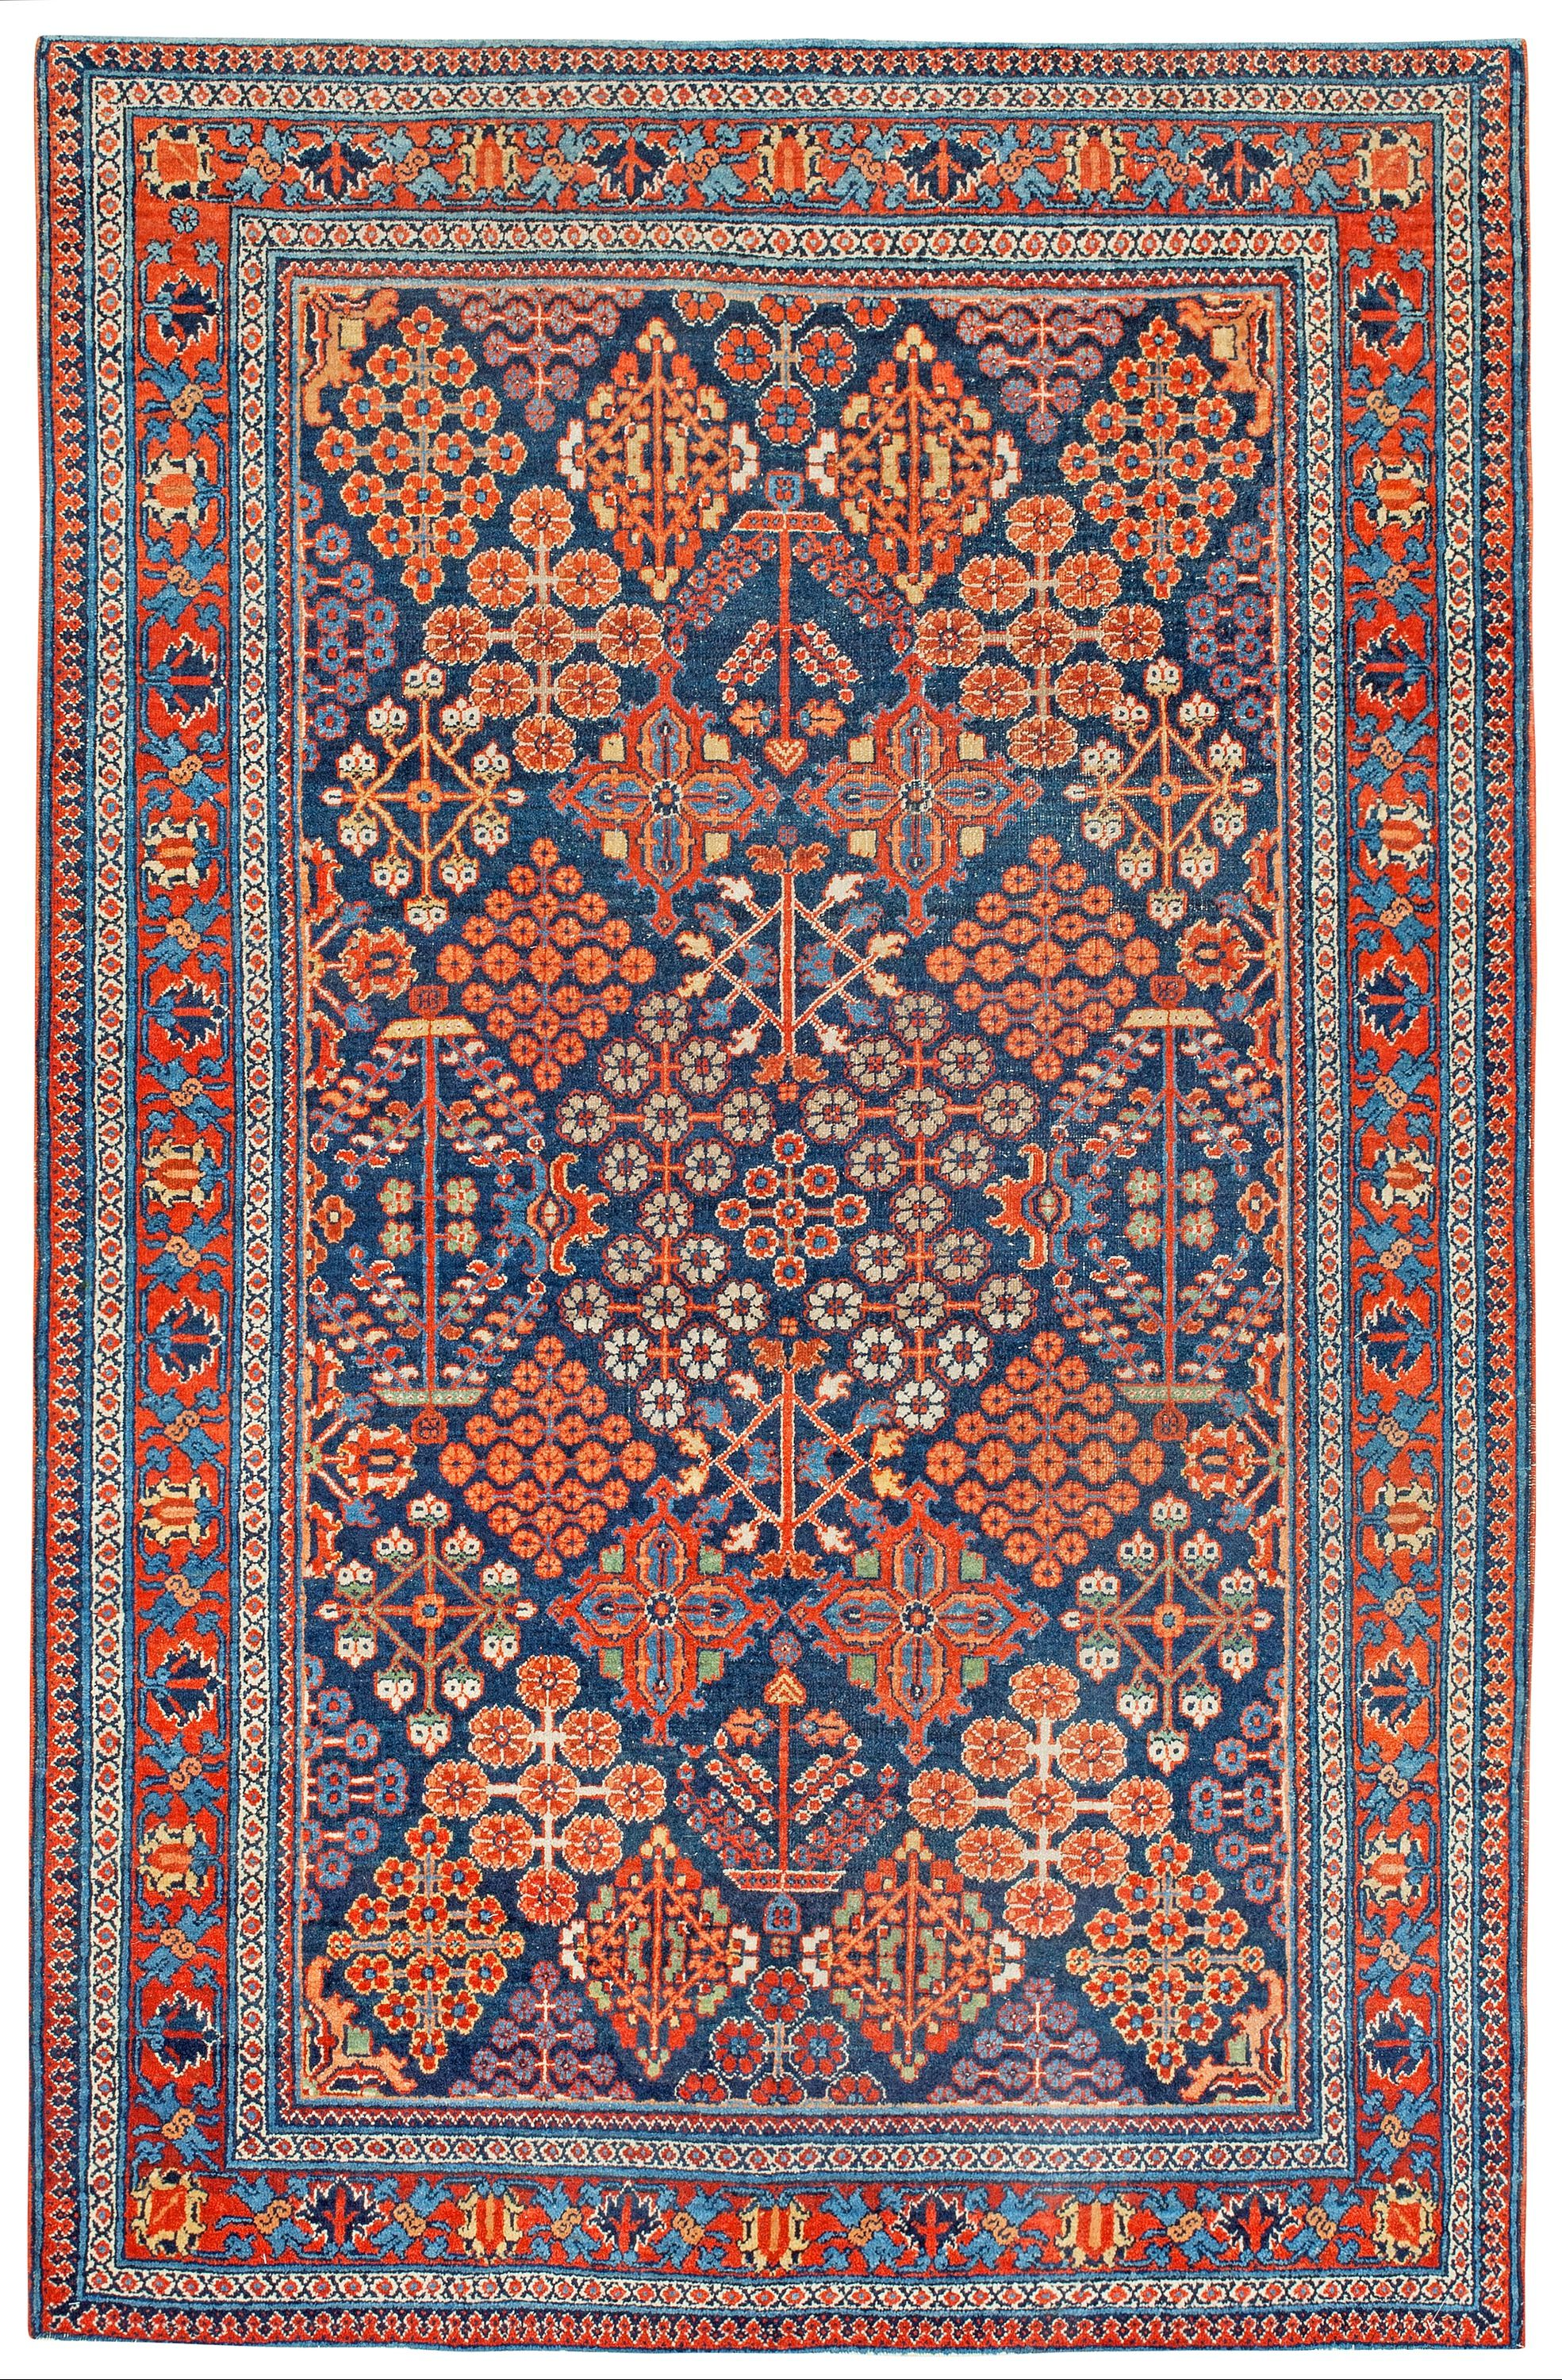 Persian Josheghan Rug Mid 20th C Persian Rug Designs Rugs On Carpet Carpet Handmade